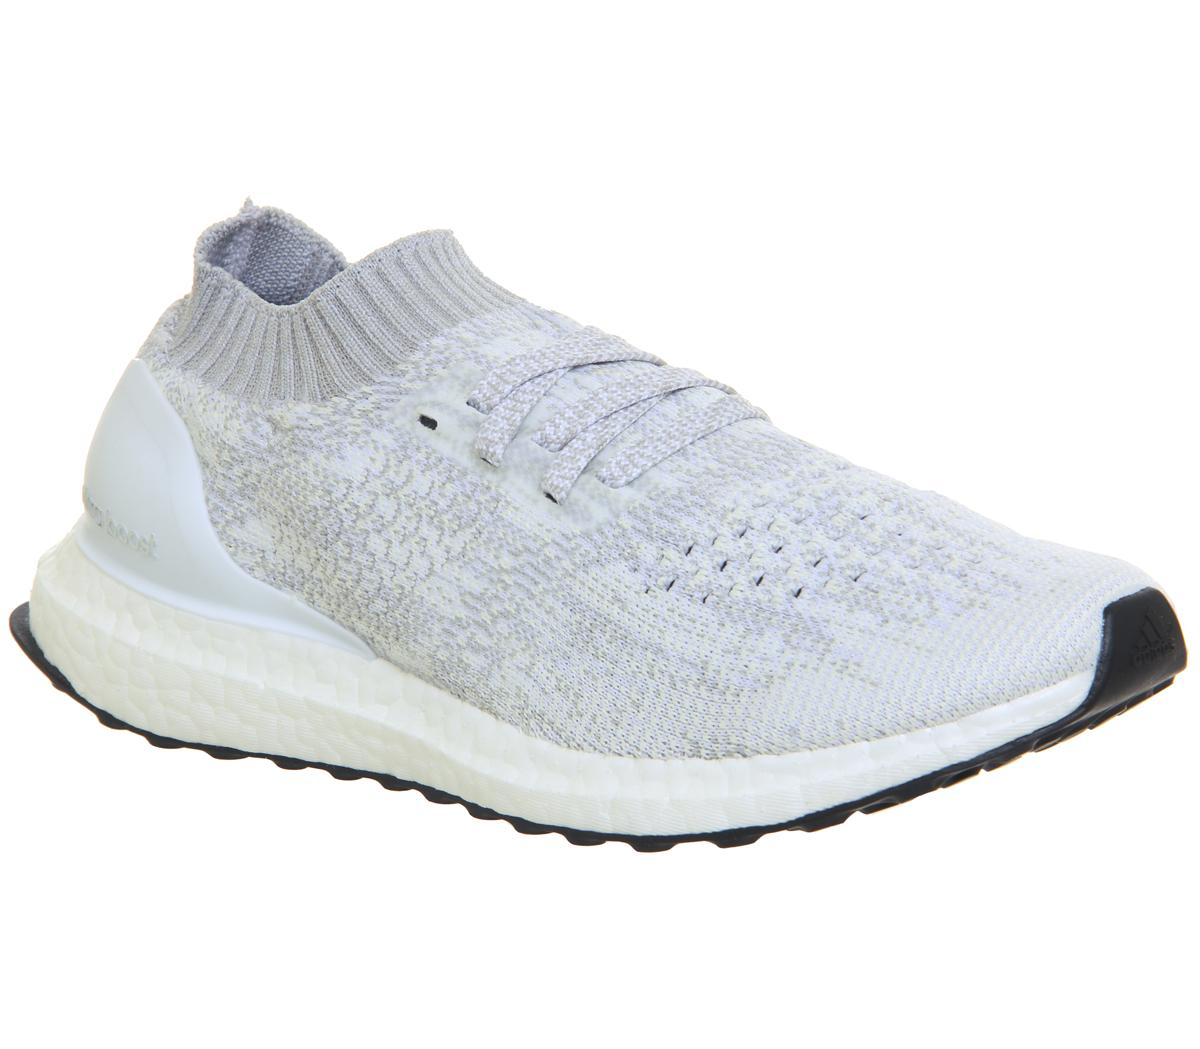 9c9898037a713 Ultra Boost Uncaged Trainers. Double tap to zoom into the image. adidas  Ultraboost ...